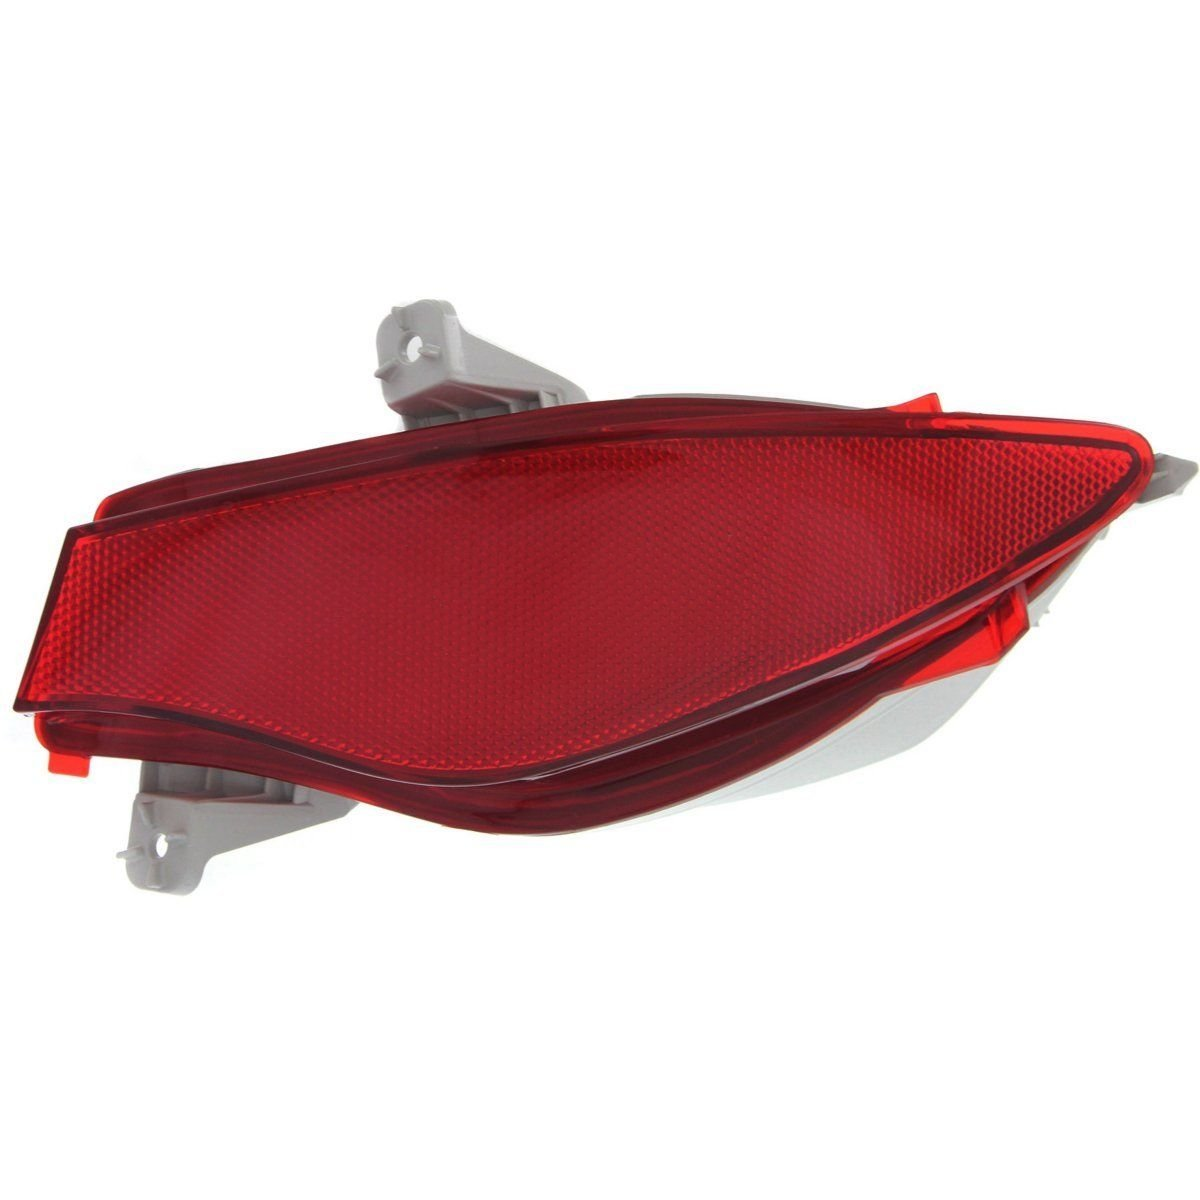 New Rear Right Passenger Side Bumper Reflector For 2010-2012 Mazda Cx7 Outer Reflector In The Bumper MA2893100